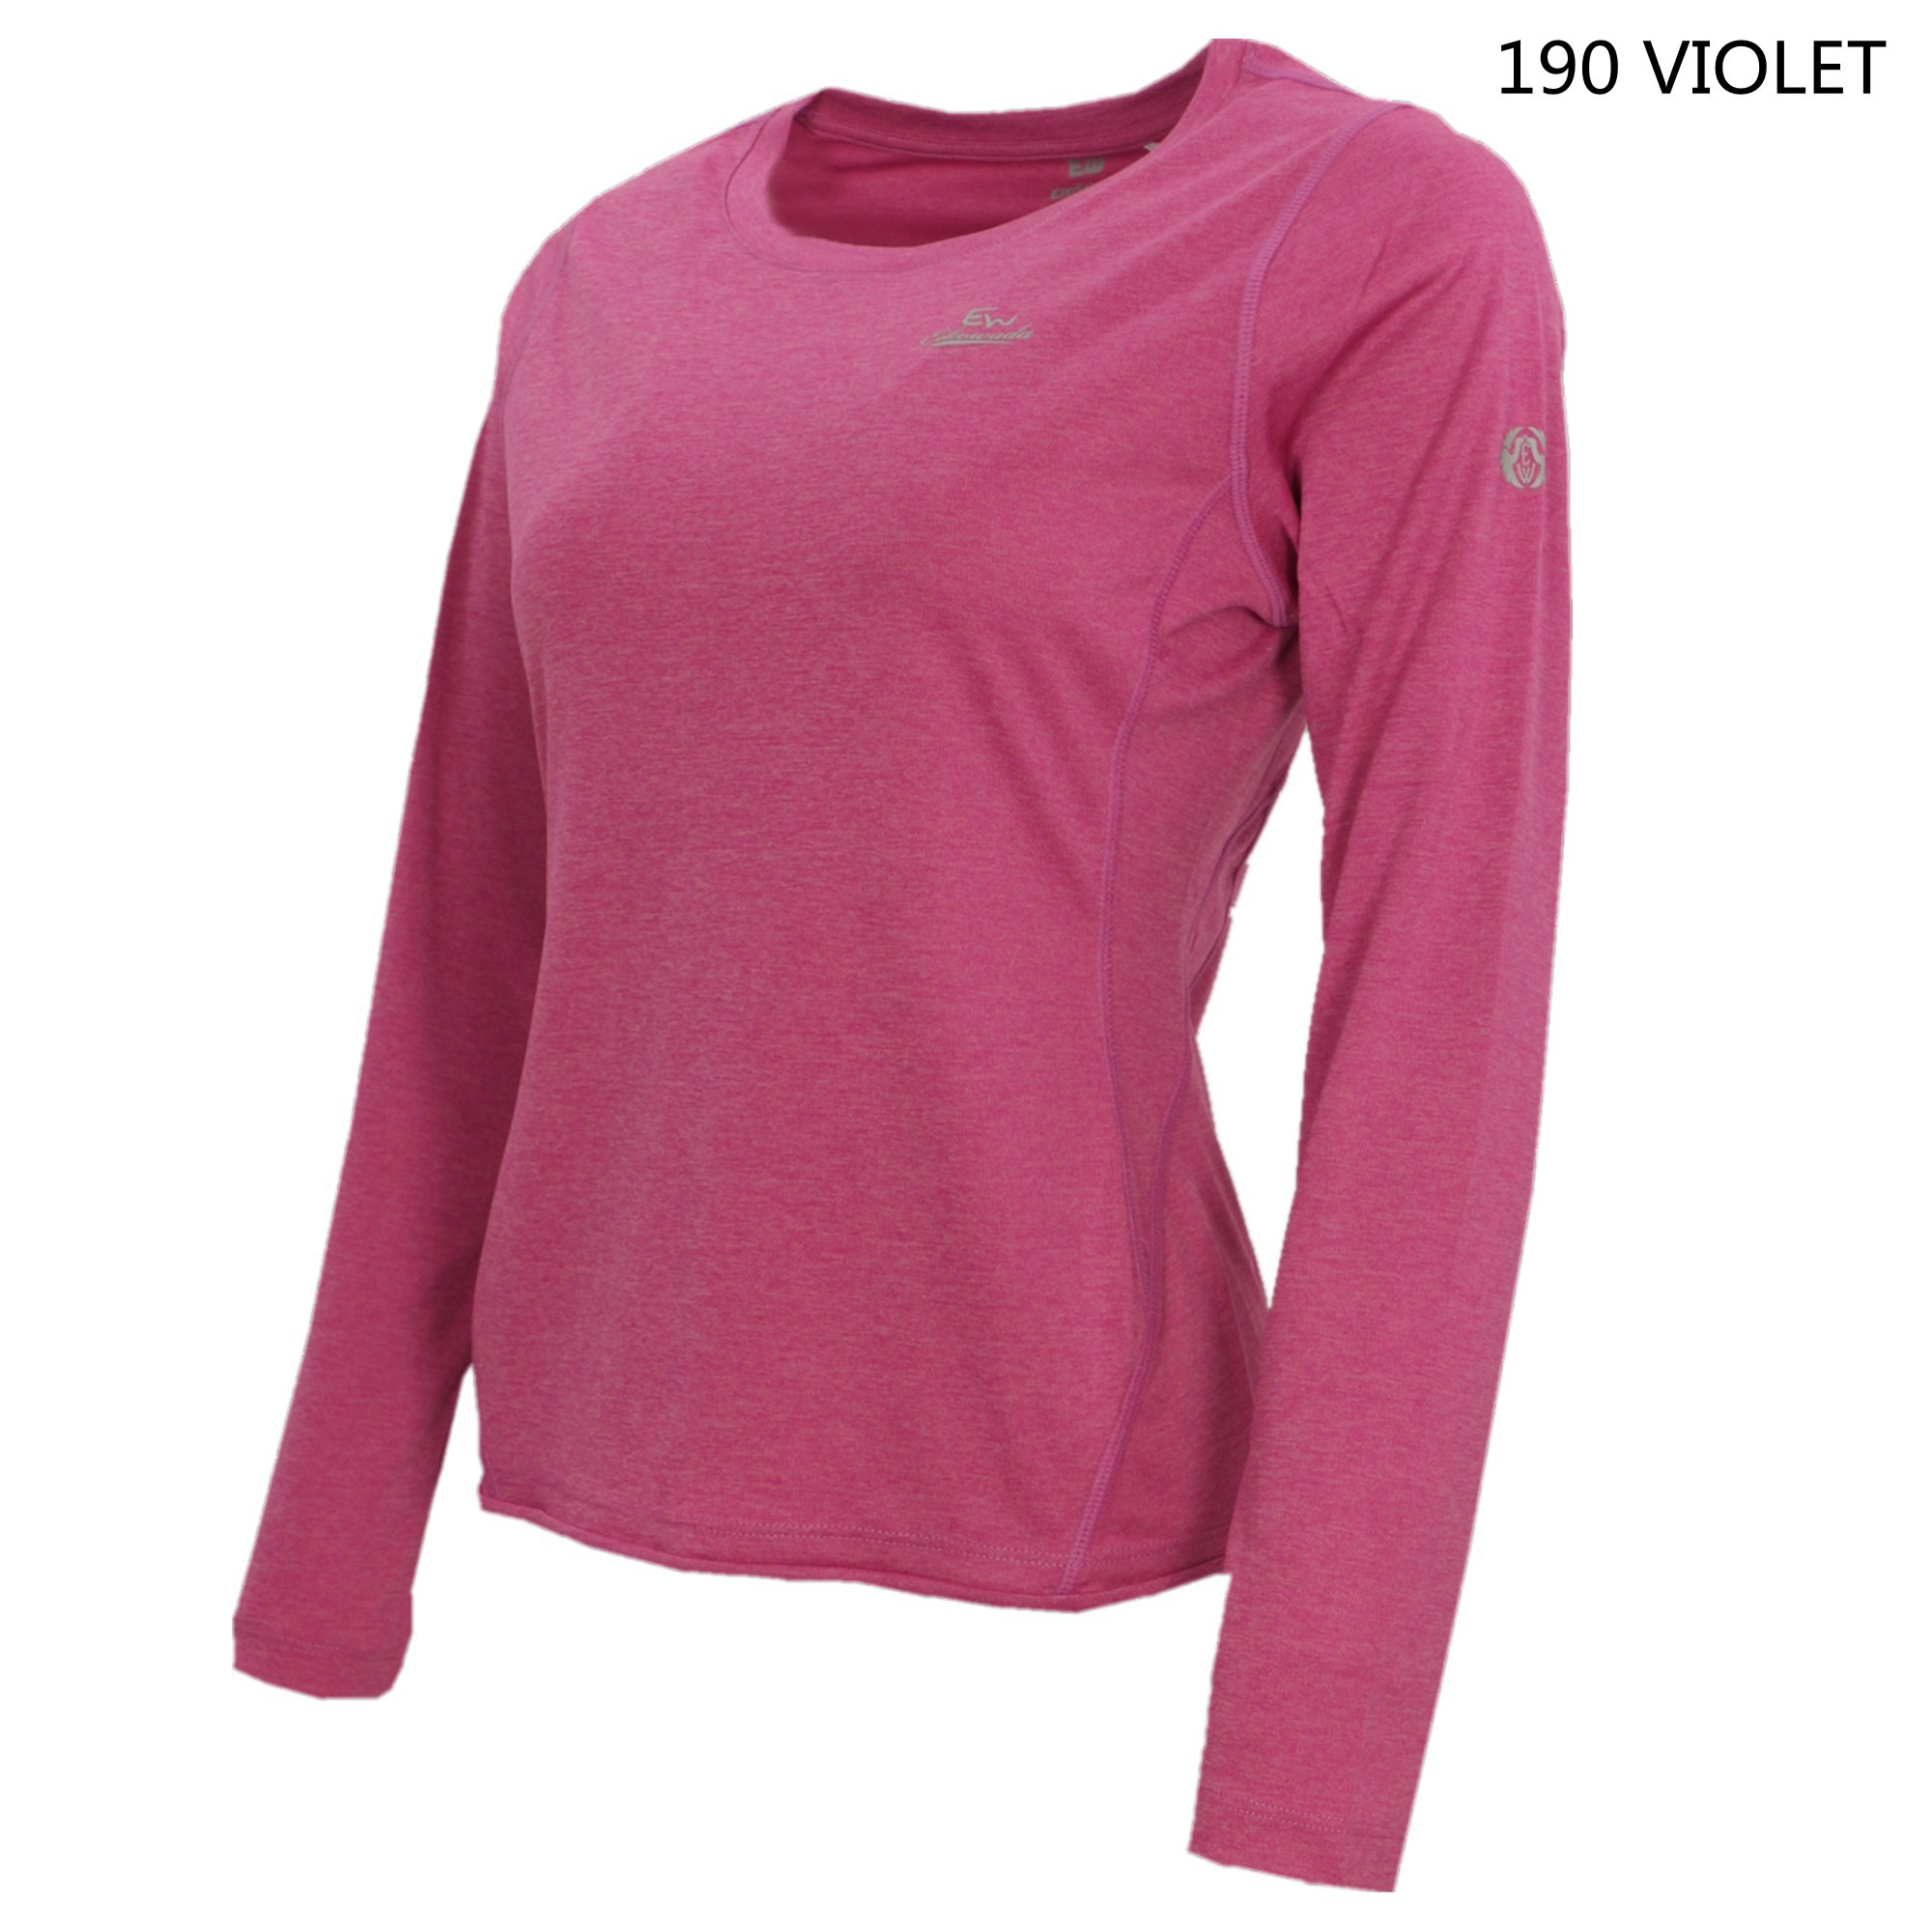 女裝長袖圓領T-shirt 女装长袖圆领T-shirt Women Long-Sleeve Round Neck T-Shirt